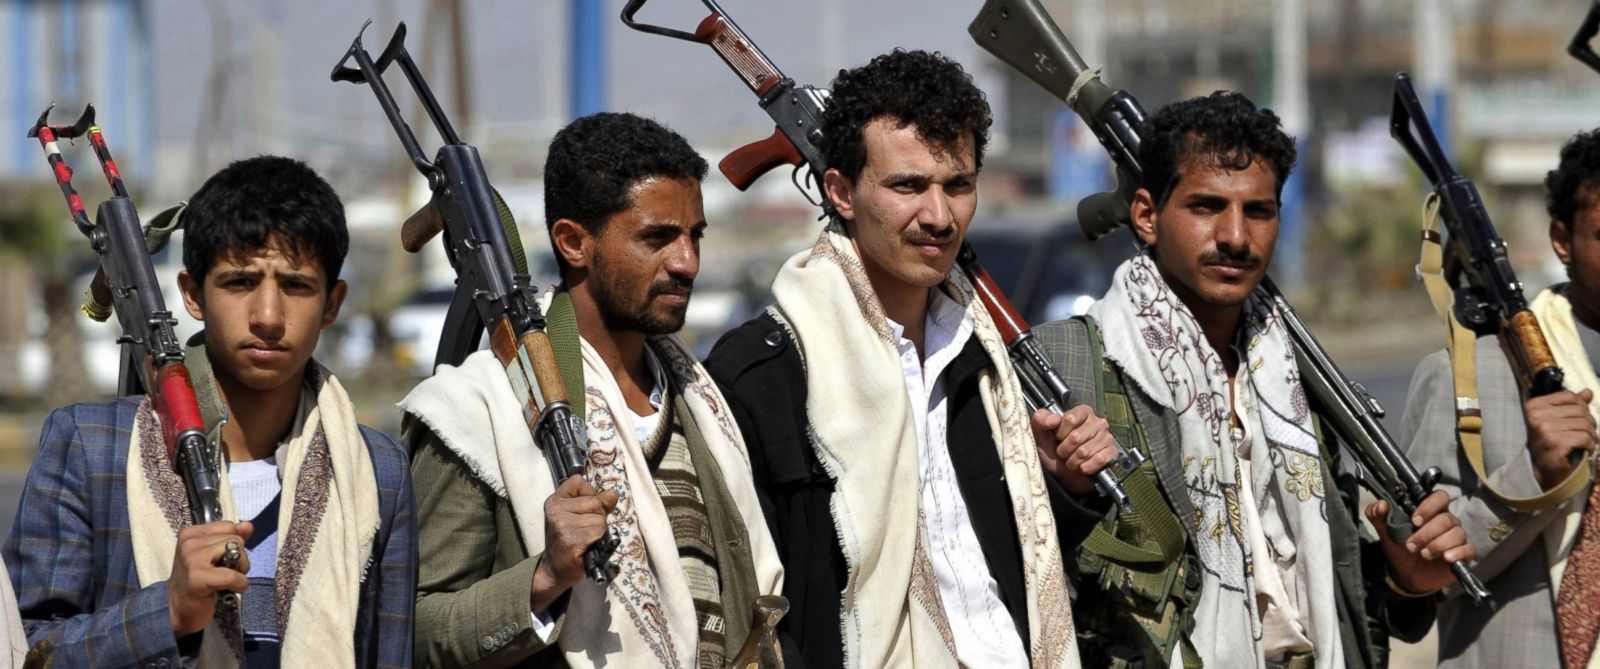 PHOTO: Armed members of Houthis gather as they close the Sebin Road to traffic near presidential palace following the conflicts between palace guards and Houthis in Sanaa, Yemen on Jan. 19, 2015.